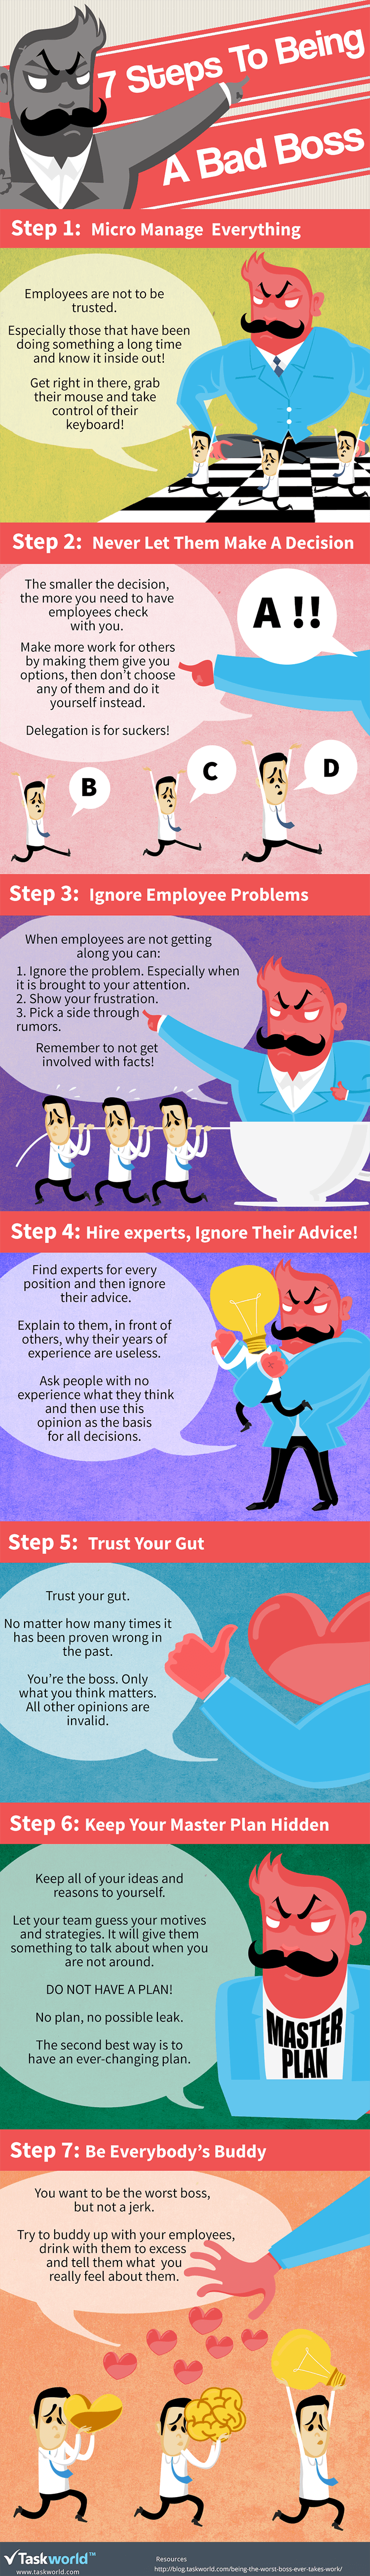 7-Steps-to-Being-a-Bad-Boss-infographic-plaza